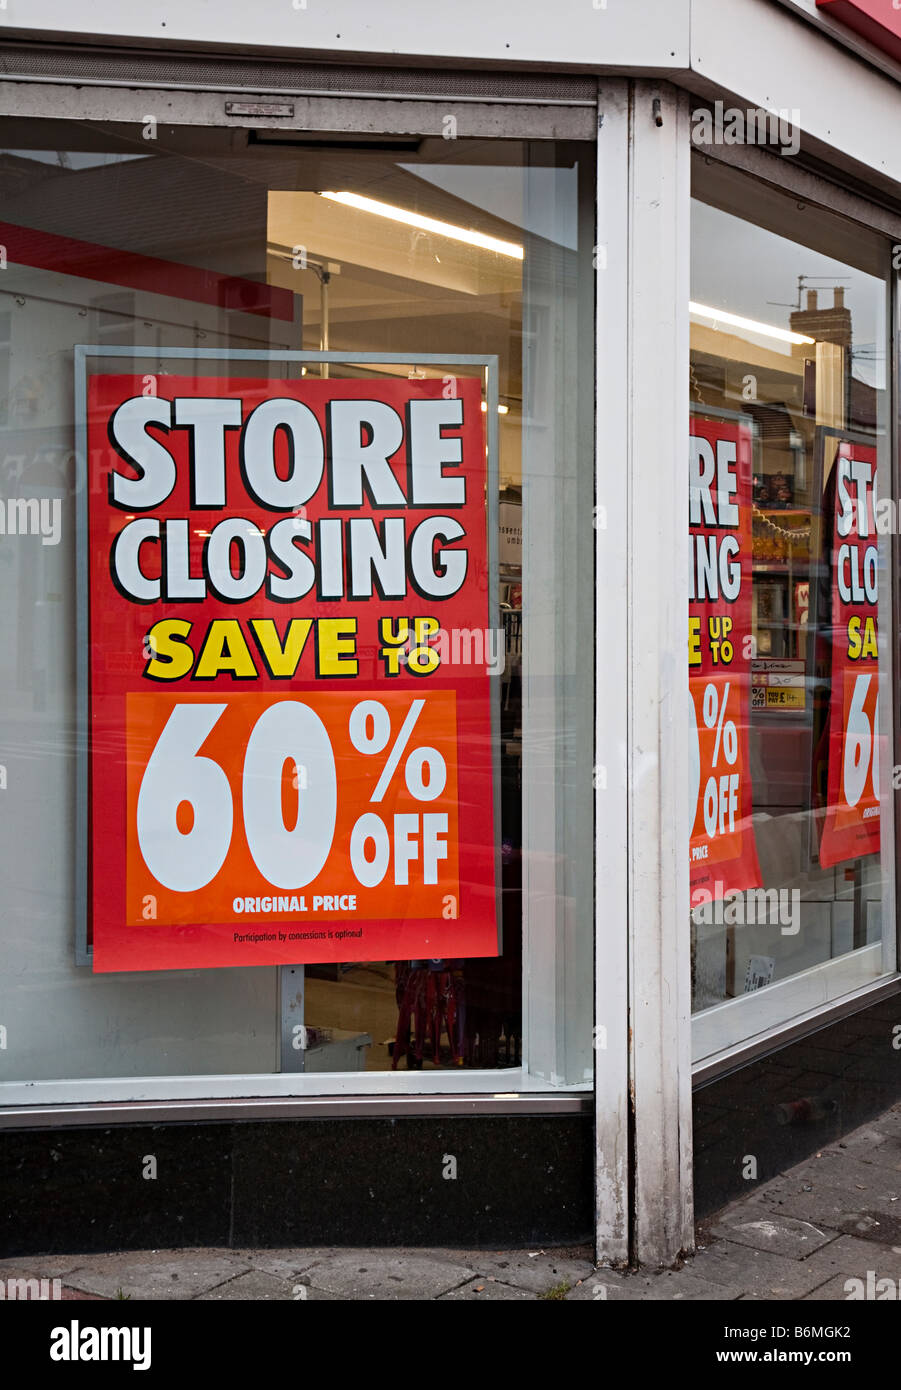 Store Closing sign in shop window of Woolworths Cardiff UK - Stock Image